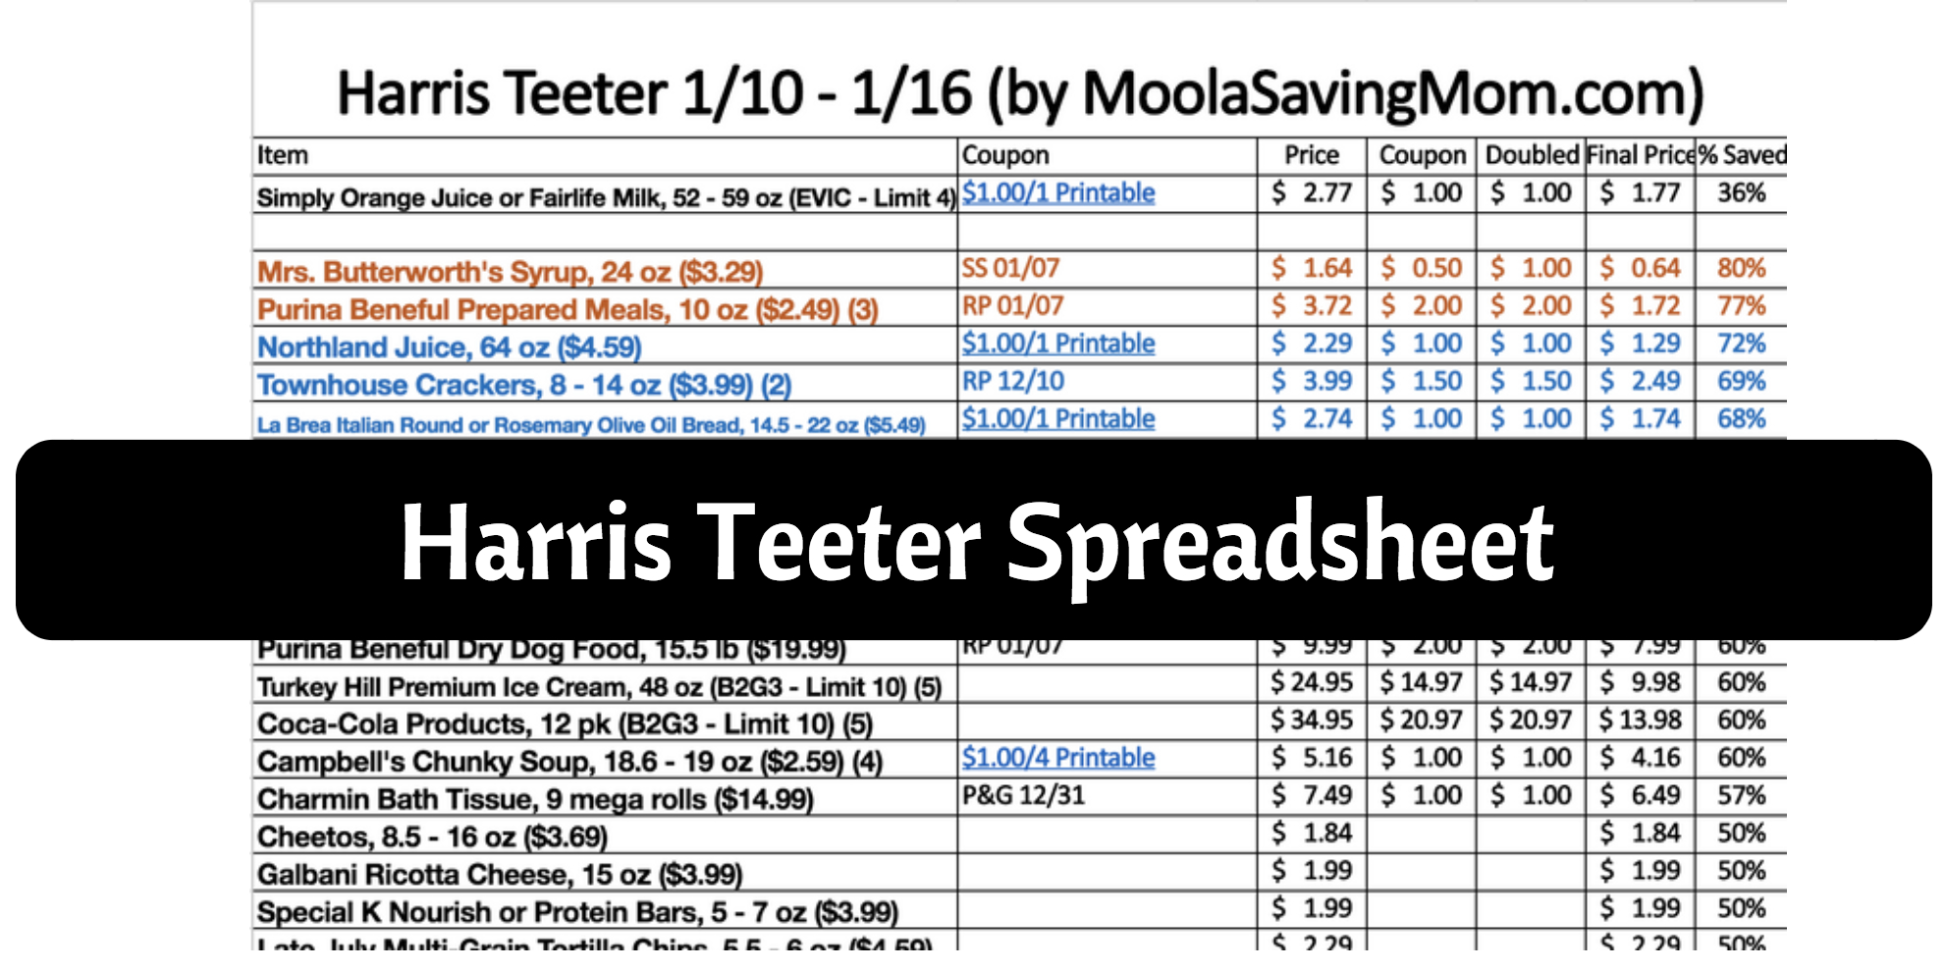 Harris Teeter Coupon Spreadsheet Intended For Harris Teeter Spreadsheet 1/10  1/16  Moola Saving Mom